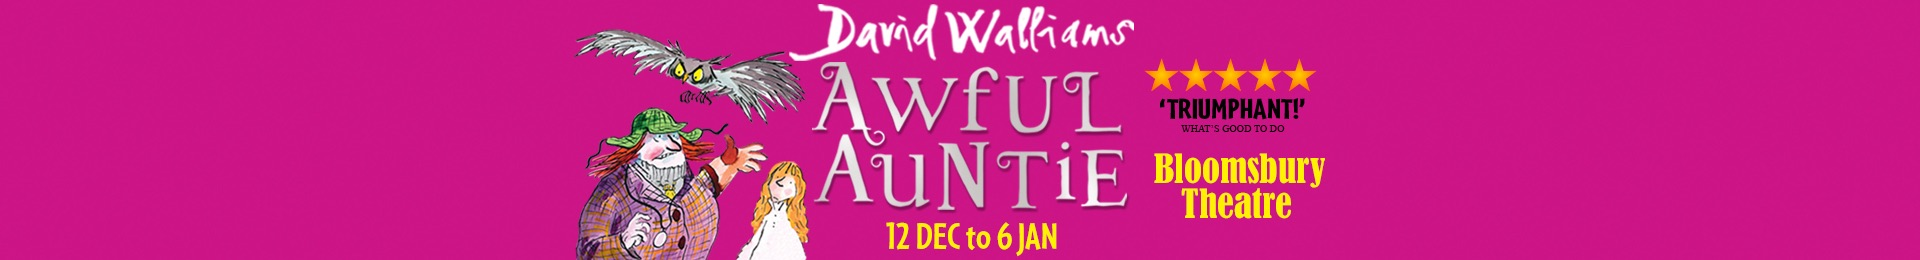 David Walliams' Awful Auntie banner image